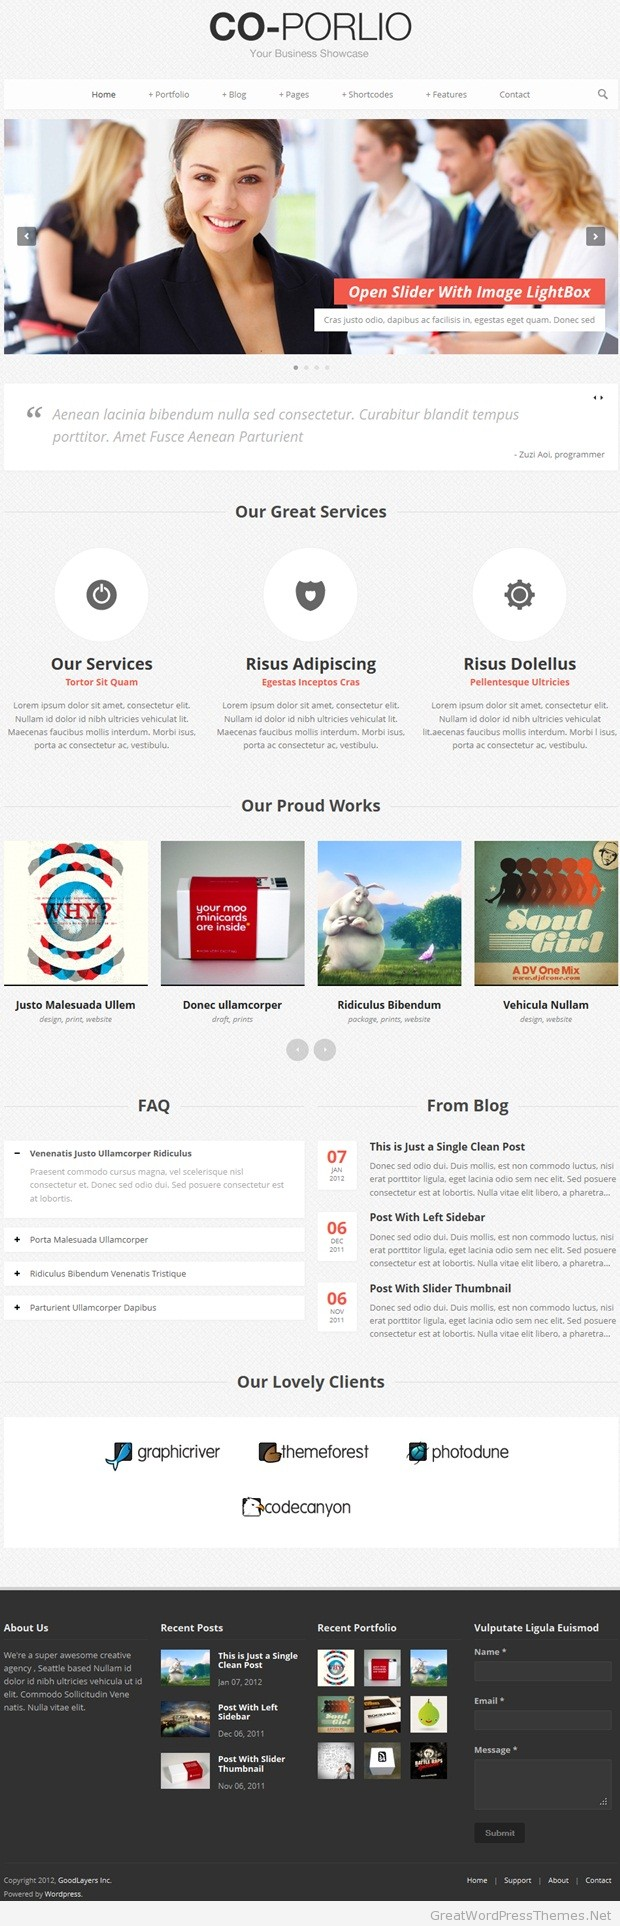 Co-Porlio-Wordpress-Theme